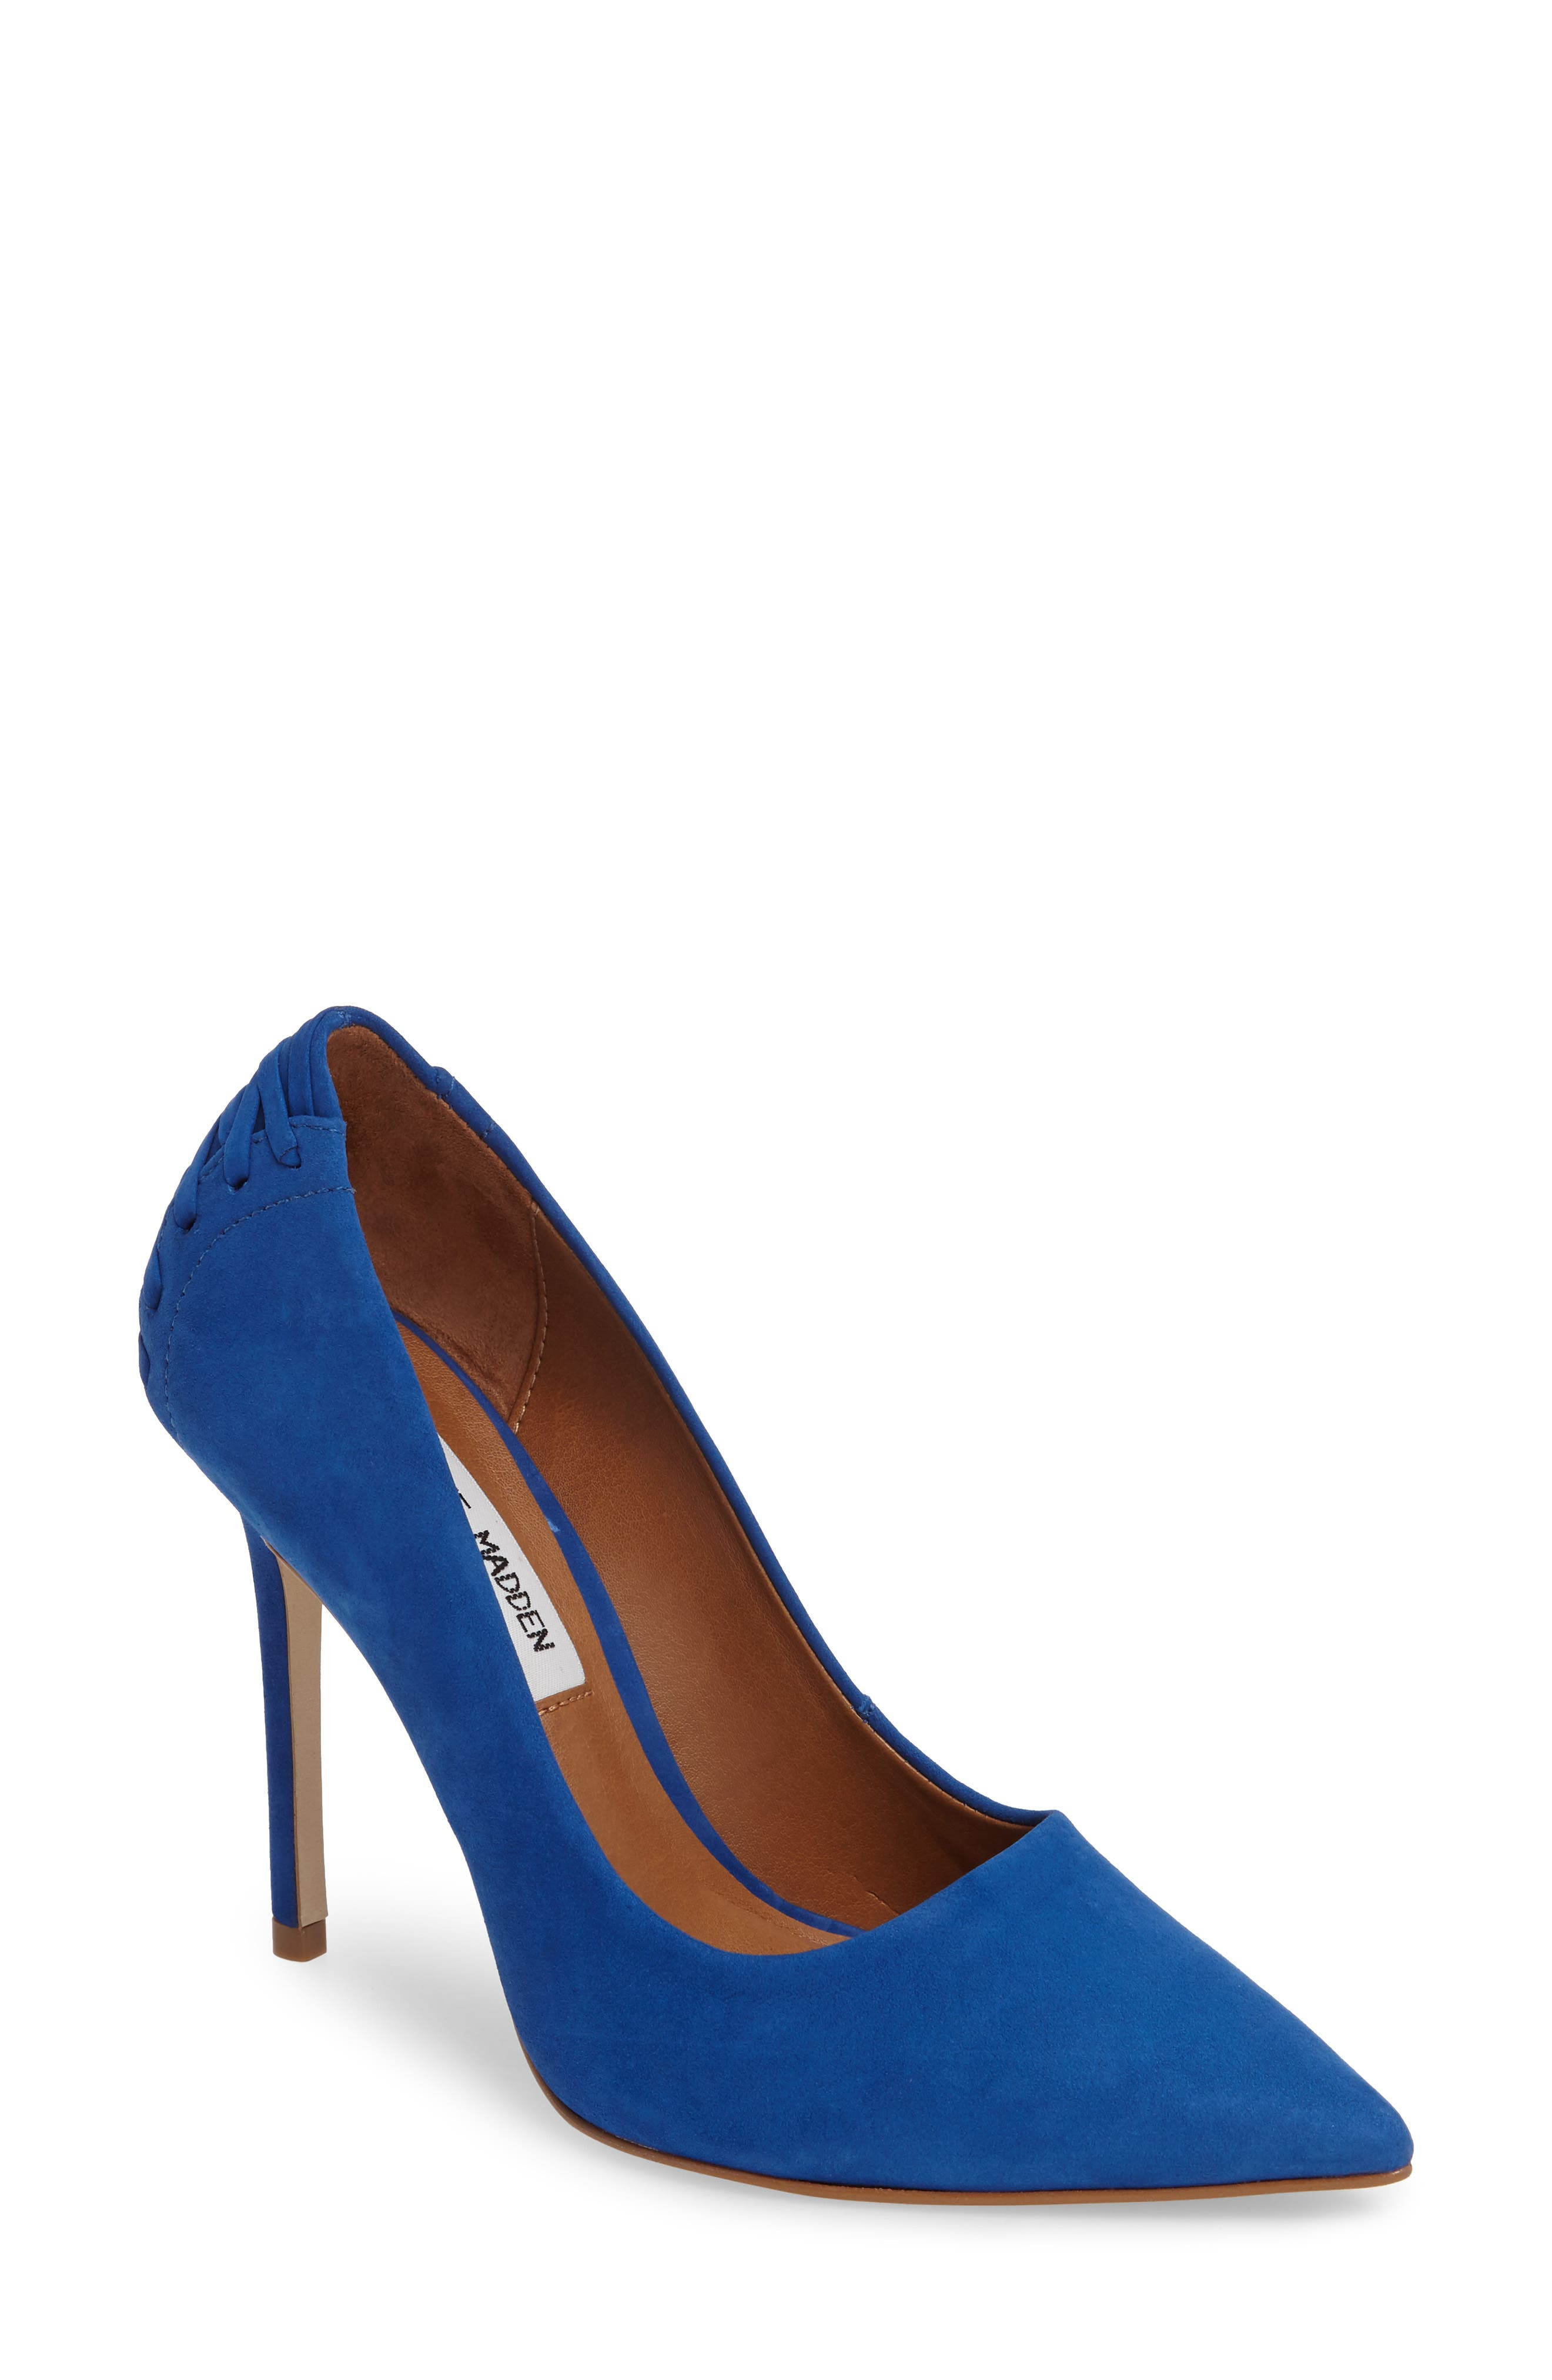 Alternate Image 1 Selected - Steve Madden Paiton Laced Heel Pump (Women)